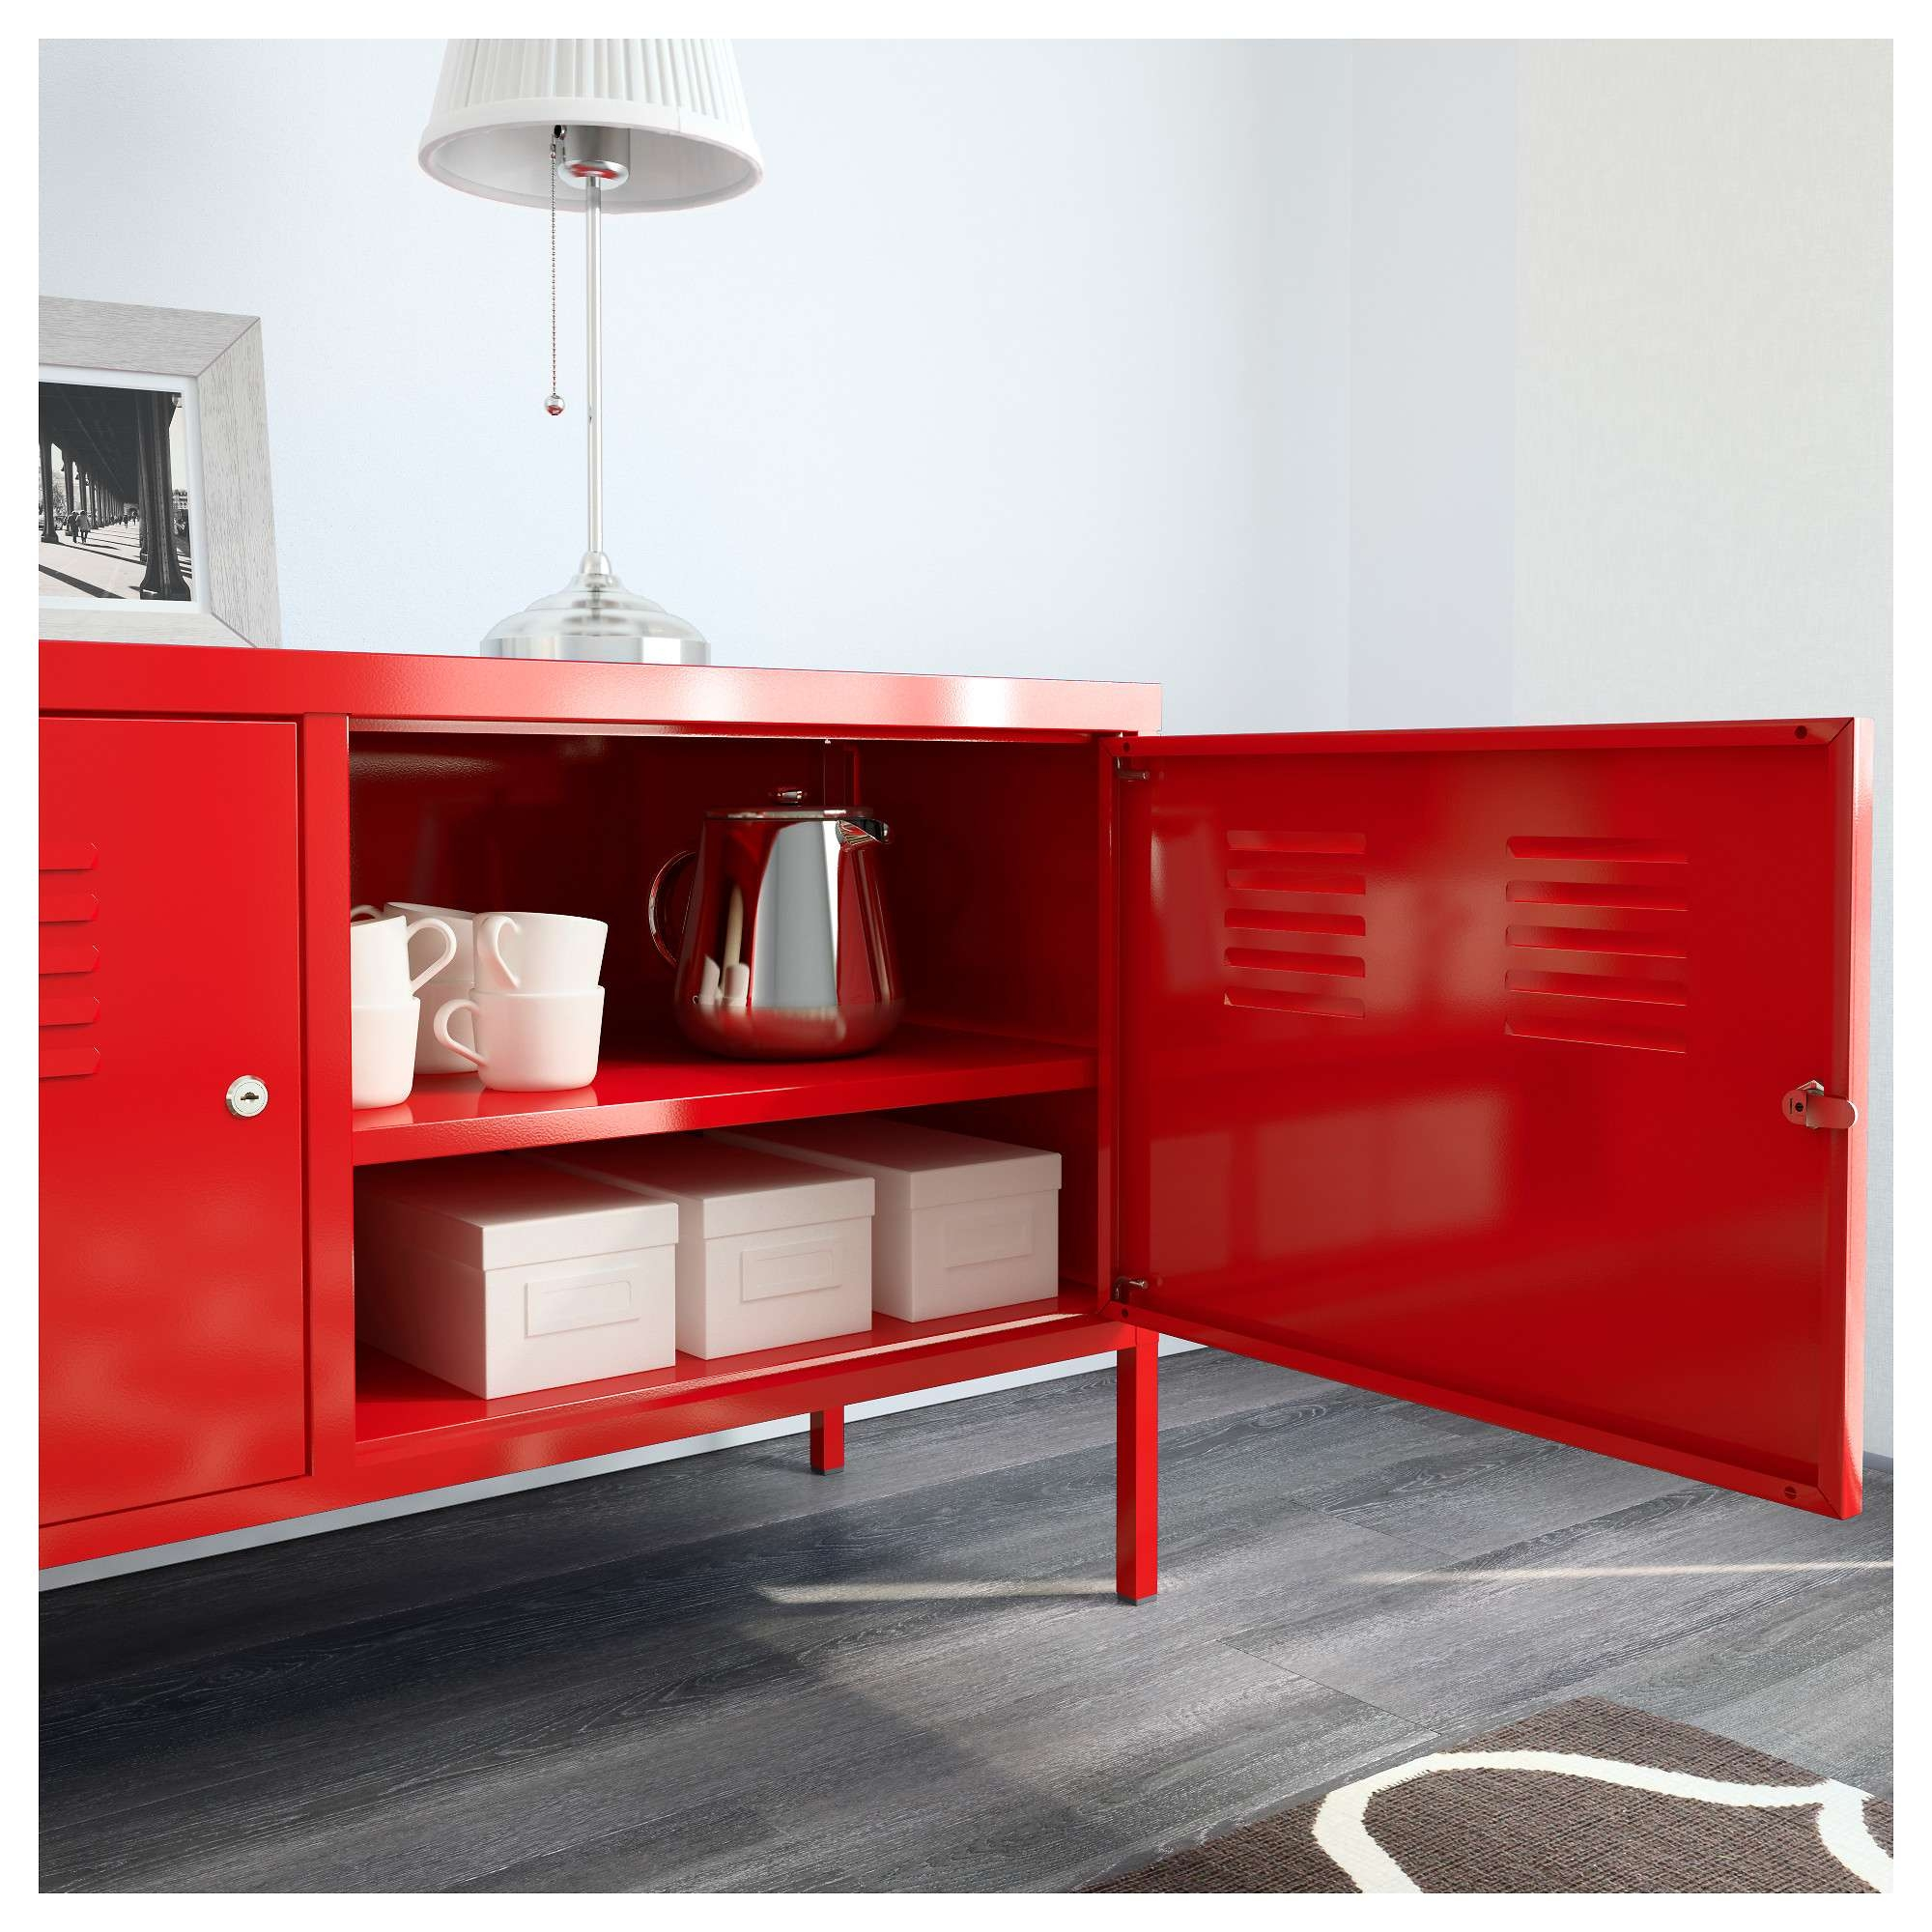 Ikea Ps Cabinet – Red – Ikea With Ikea Red Sideboards (Gallery 5 of 20)